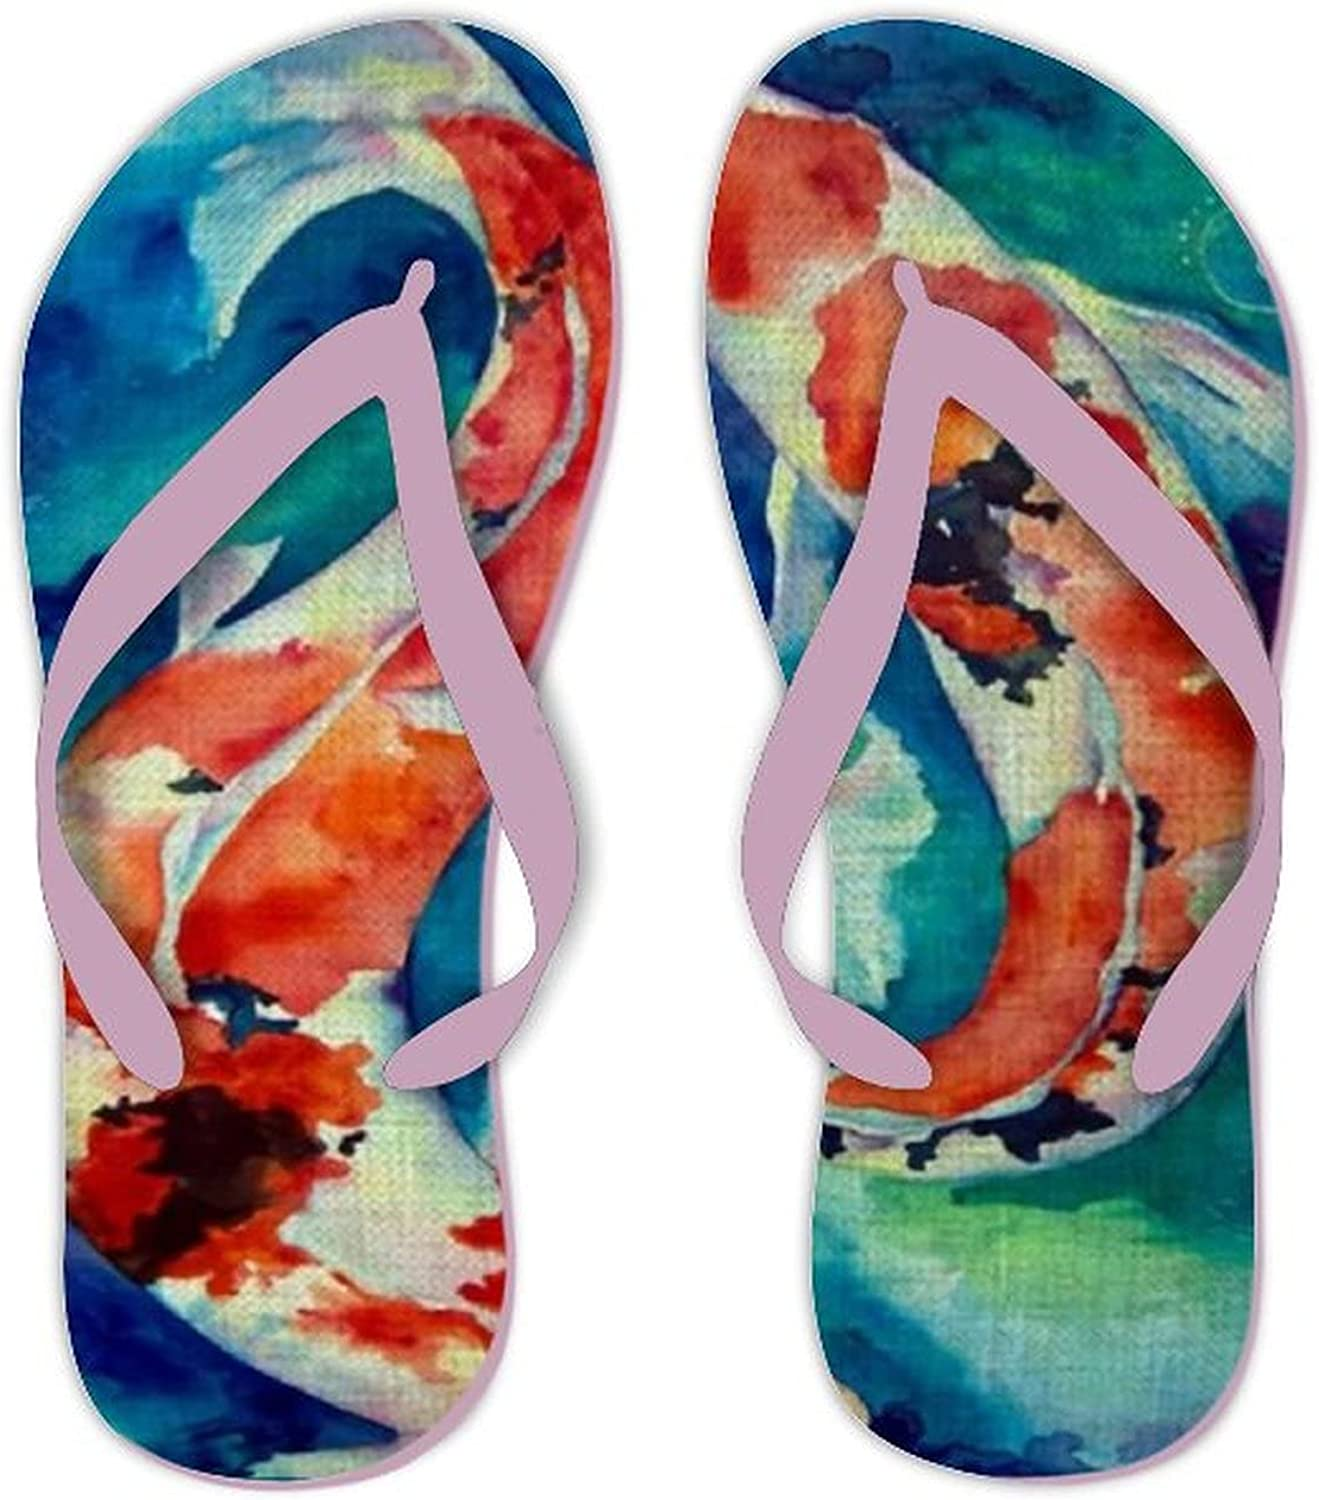 Japanese Koi Fish Popular product Max 44% OFF Comfortable Beach Sandals Strap Thongs Leather